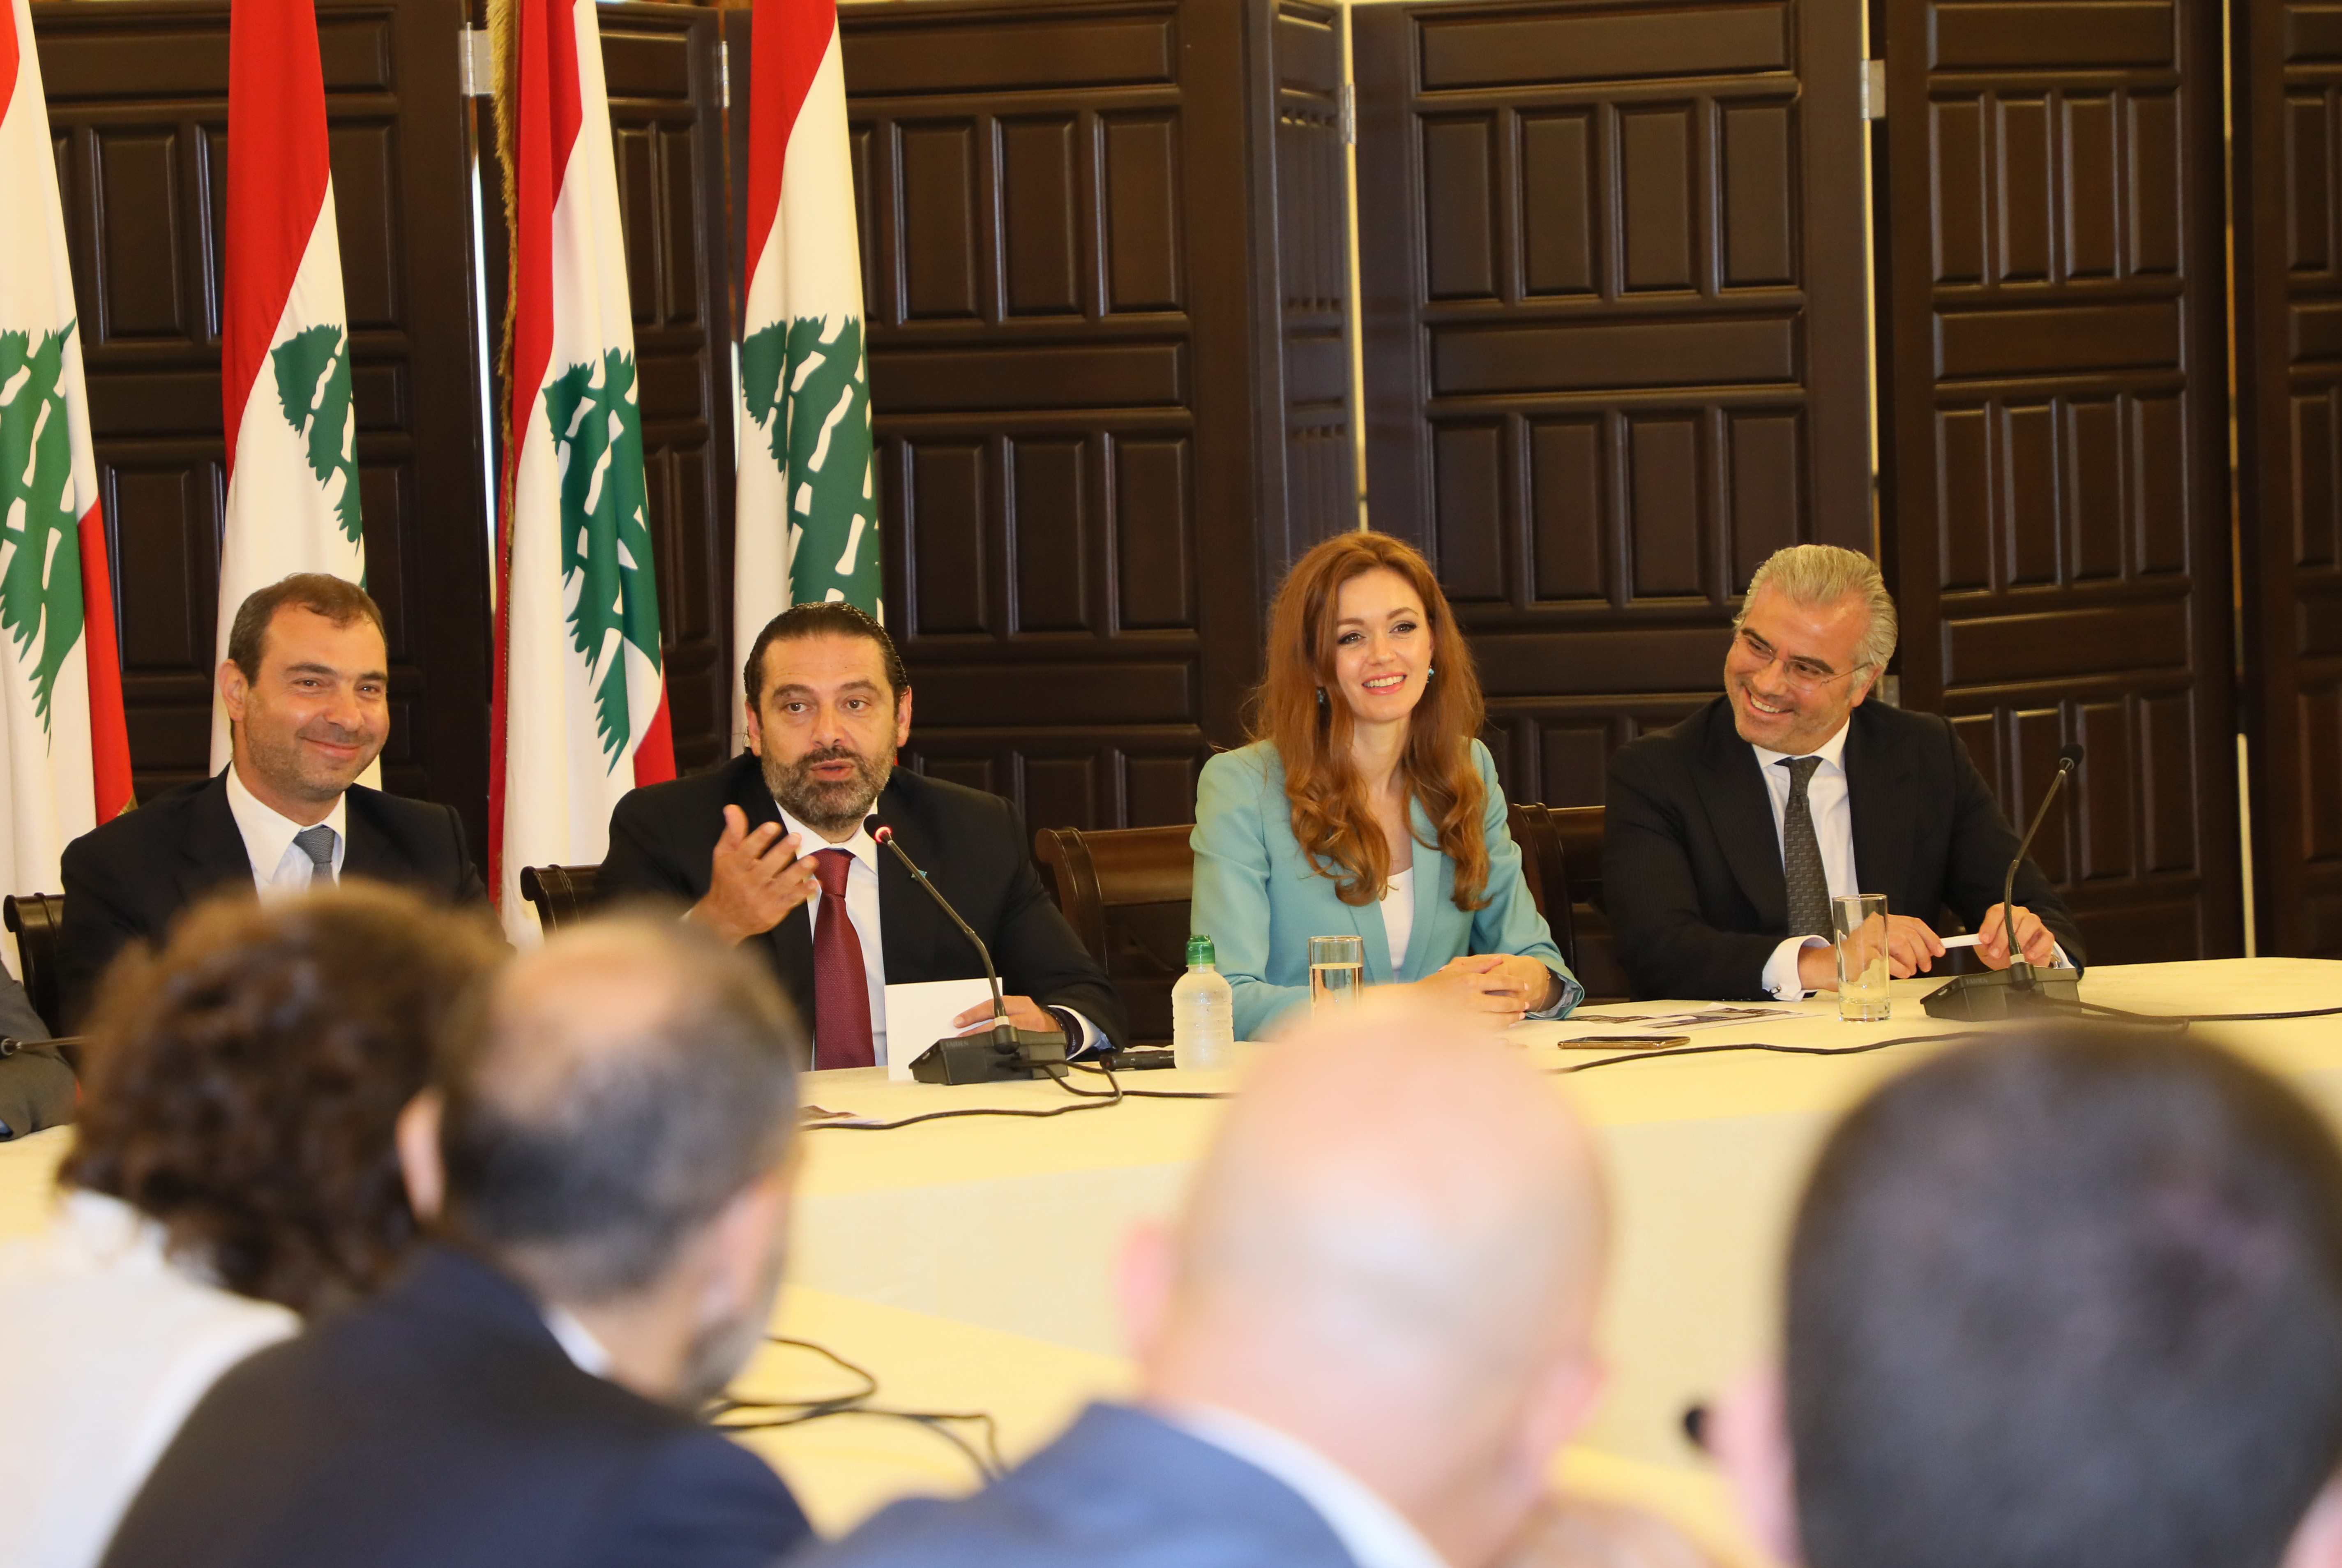 Pr Minister Saad Hariri Attnes a Workshop at Grand Serial 2